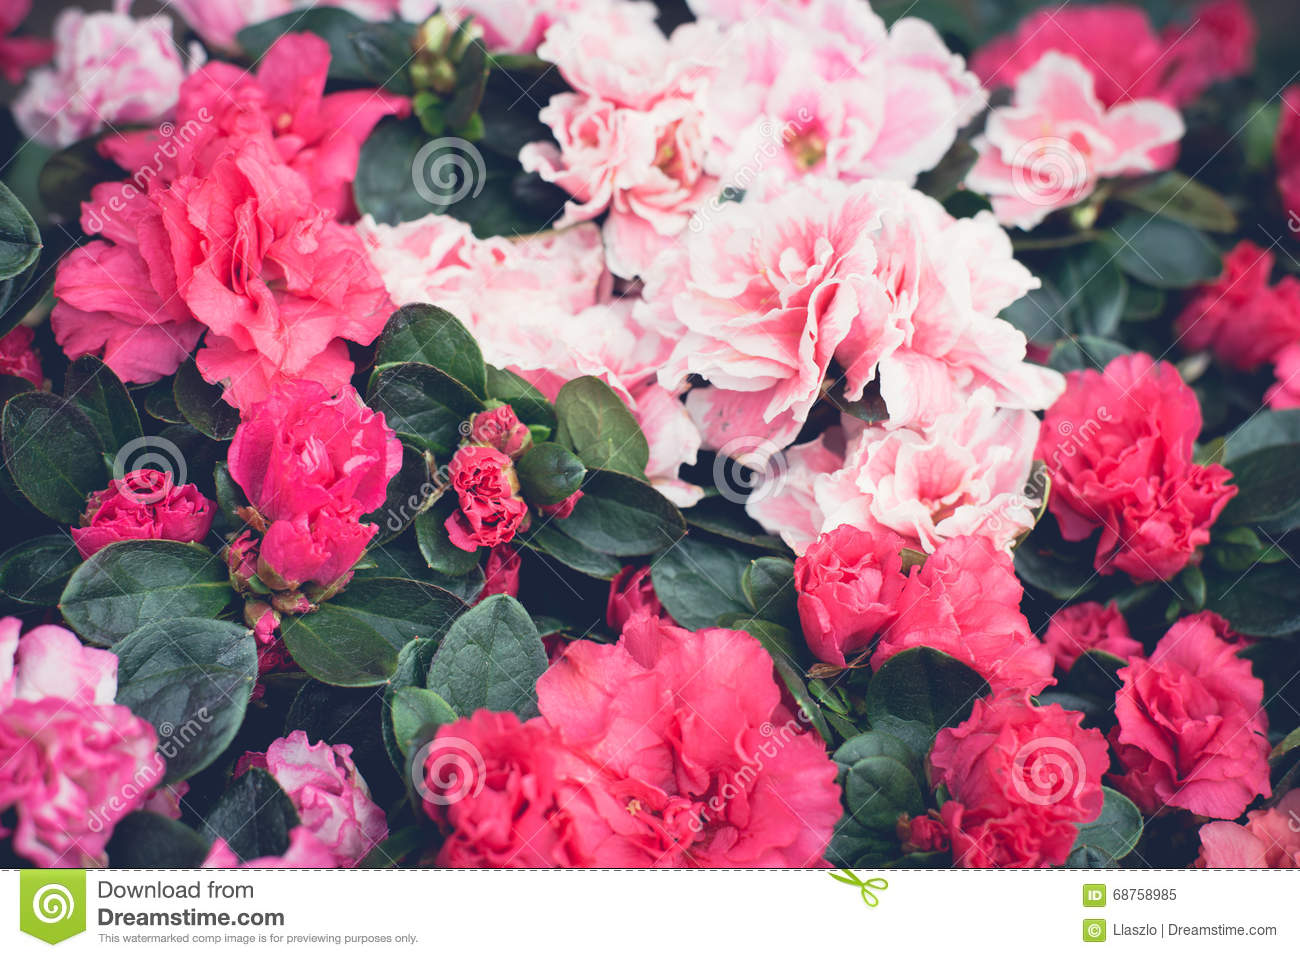 Pink Floral Wallpaper Stock Image Image Of Dark Flowers 68758985